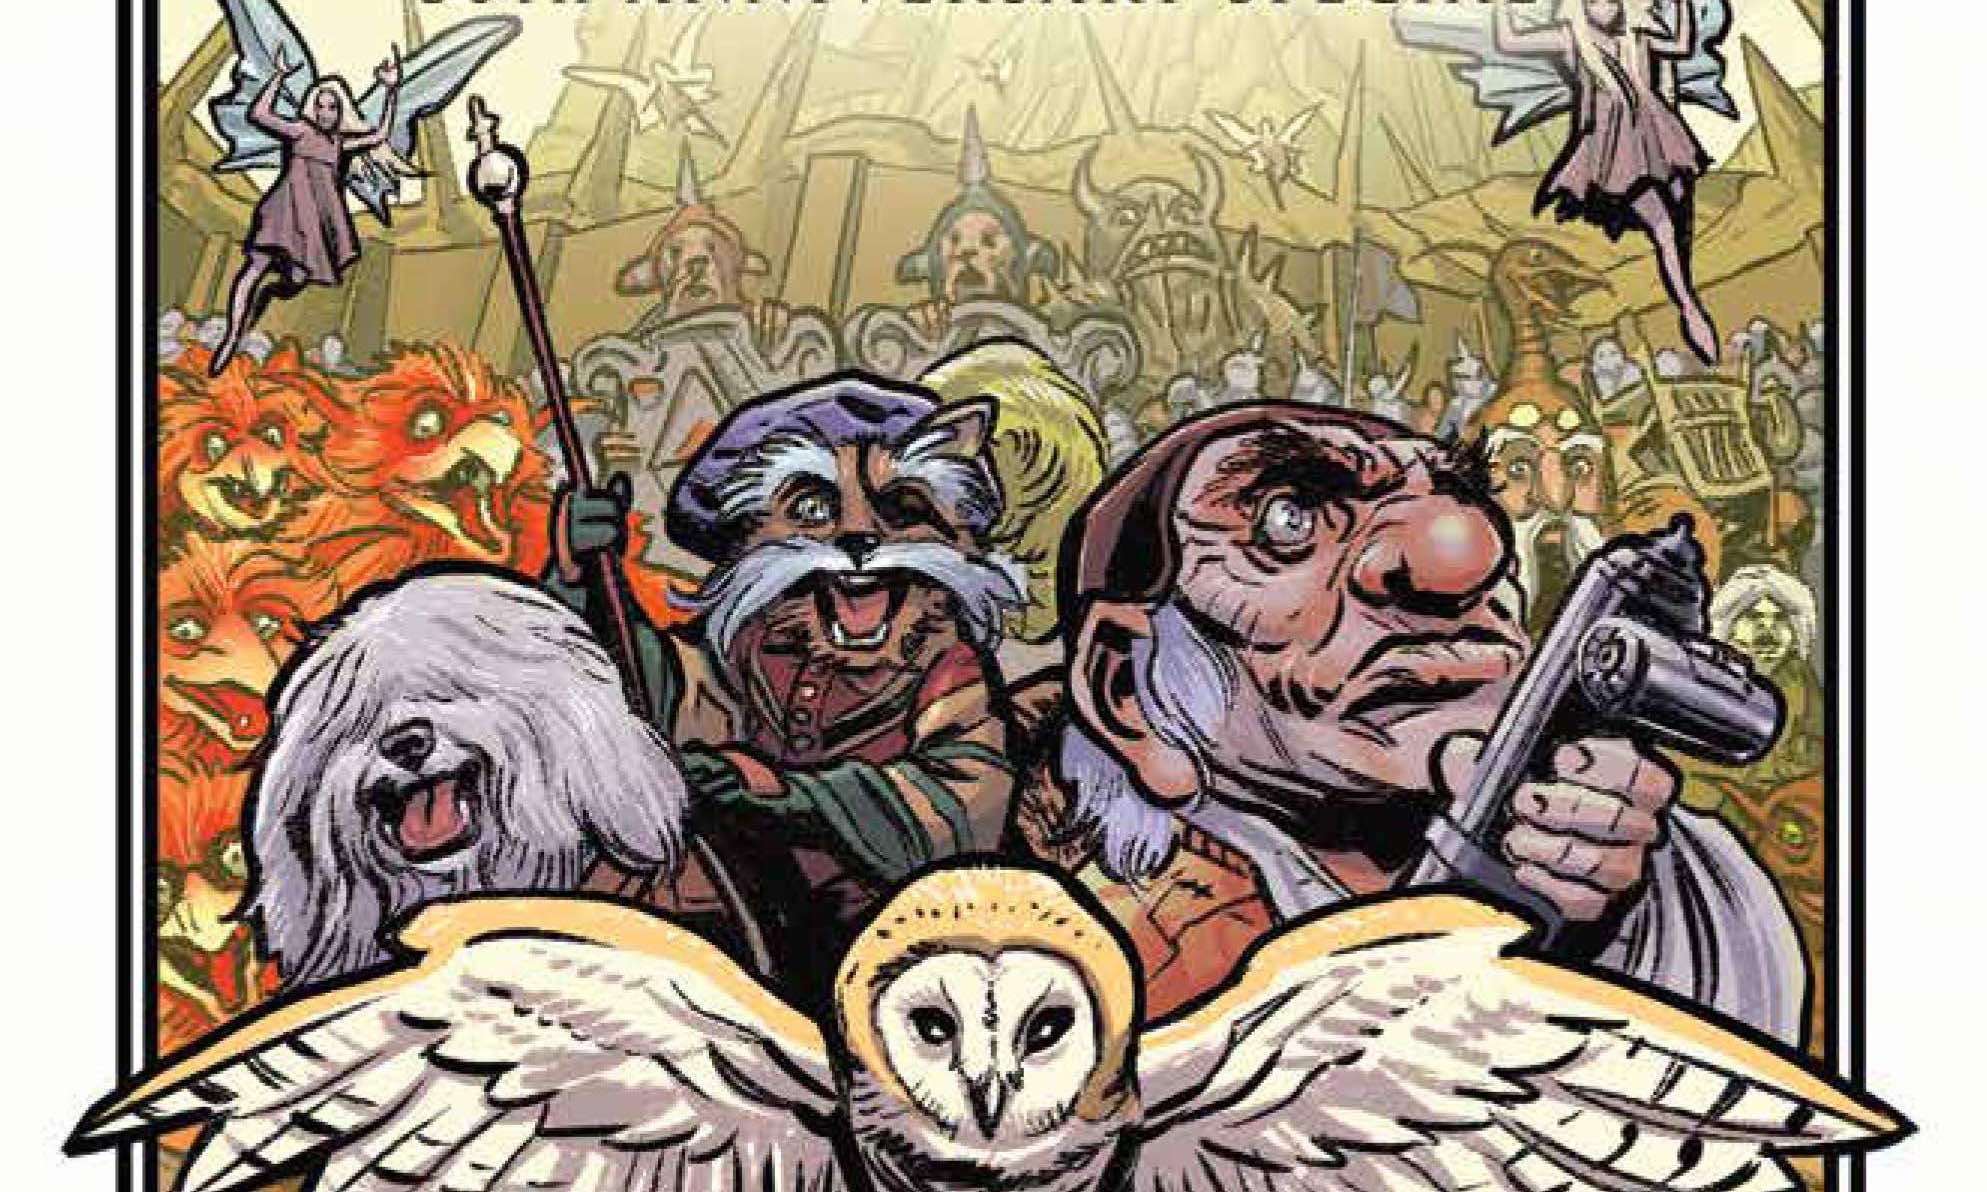 BOOM! Preview: Jim Henson's Labyrinth 30th Anniversary Special #1